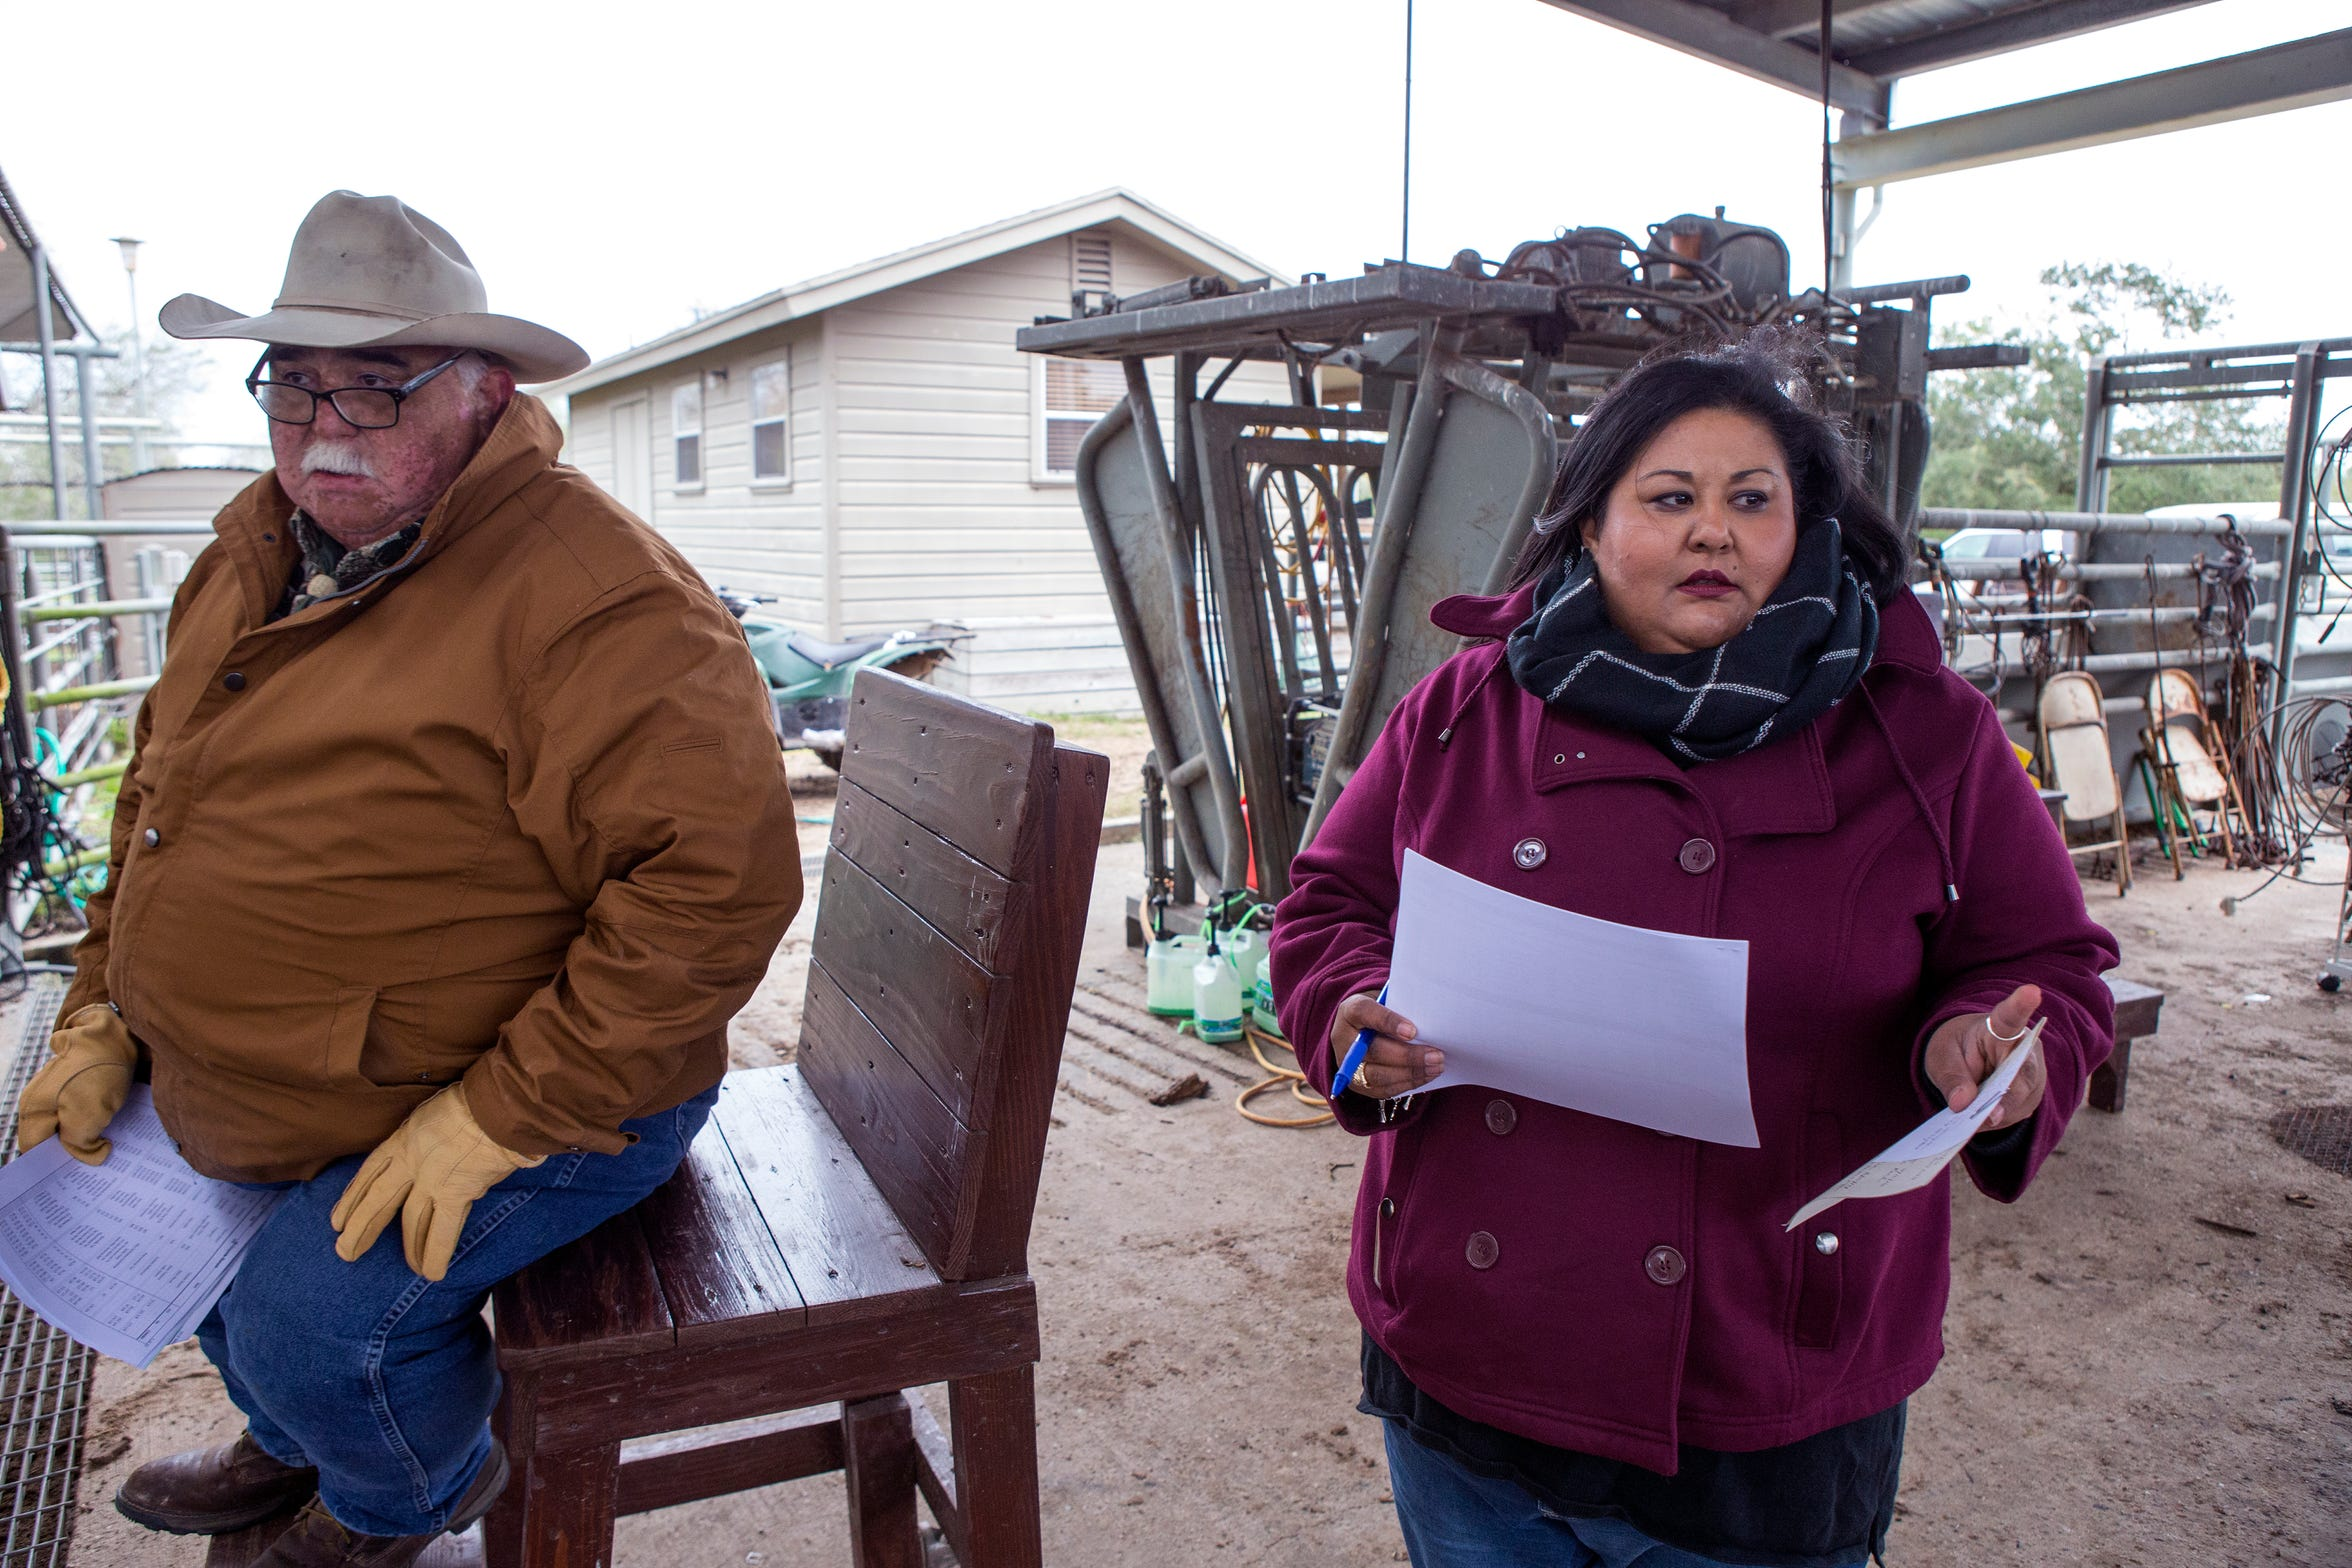 Della Serna (right) and her father, Felix Serna, director of registered livestock operations, sort cattle to be sold at auction at the El Coyote Ranch on Tuesday, November 13, 2018. Della began following her father around the ranch when she was about five and began working at the ranch when she was 12. Now, Della plays a major role in the ranch's large cattle and pure-bred operations, maintainingÊrecords, dealing with genetics, keeping up with USDA regulations, managing proceduralÊschedules for livestock, halter breaking and showingÊanimals, whileÊmarketing the ranch's prized cattleÊto prospective buyers.